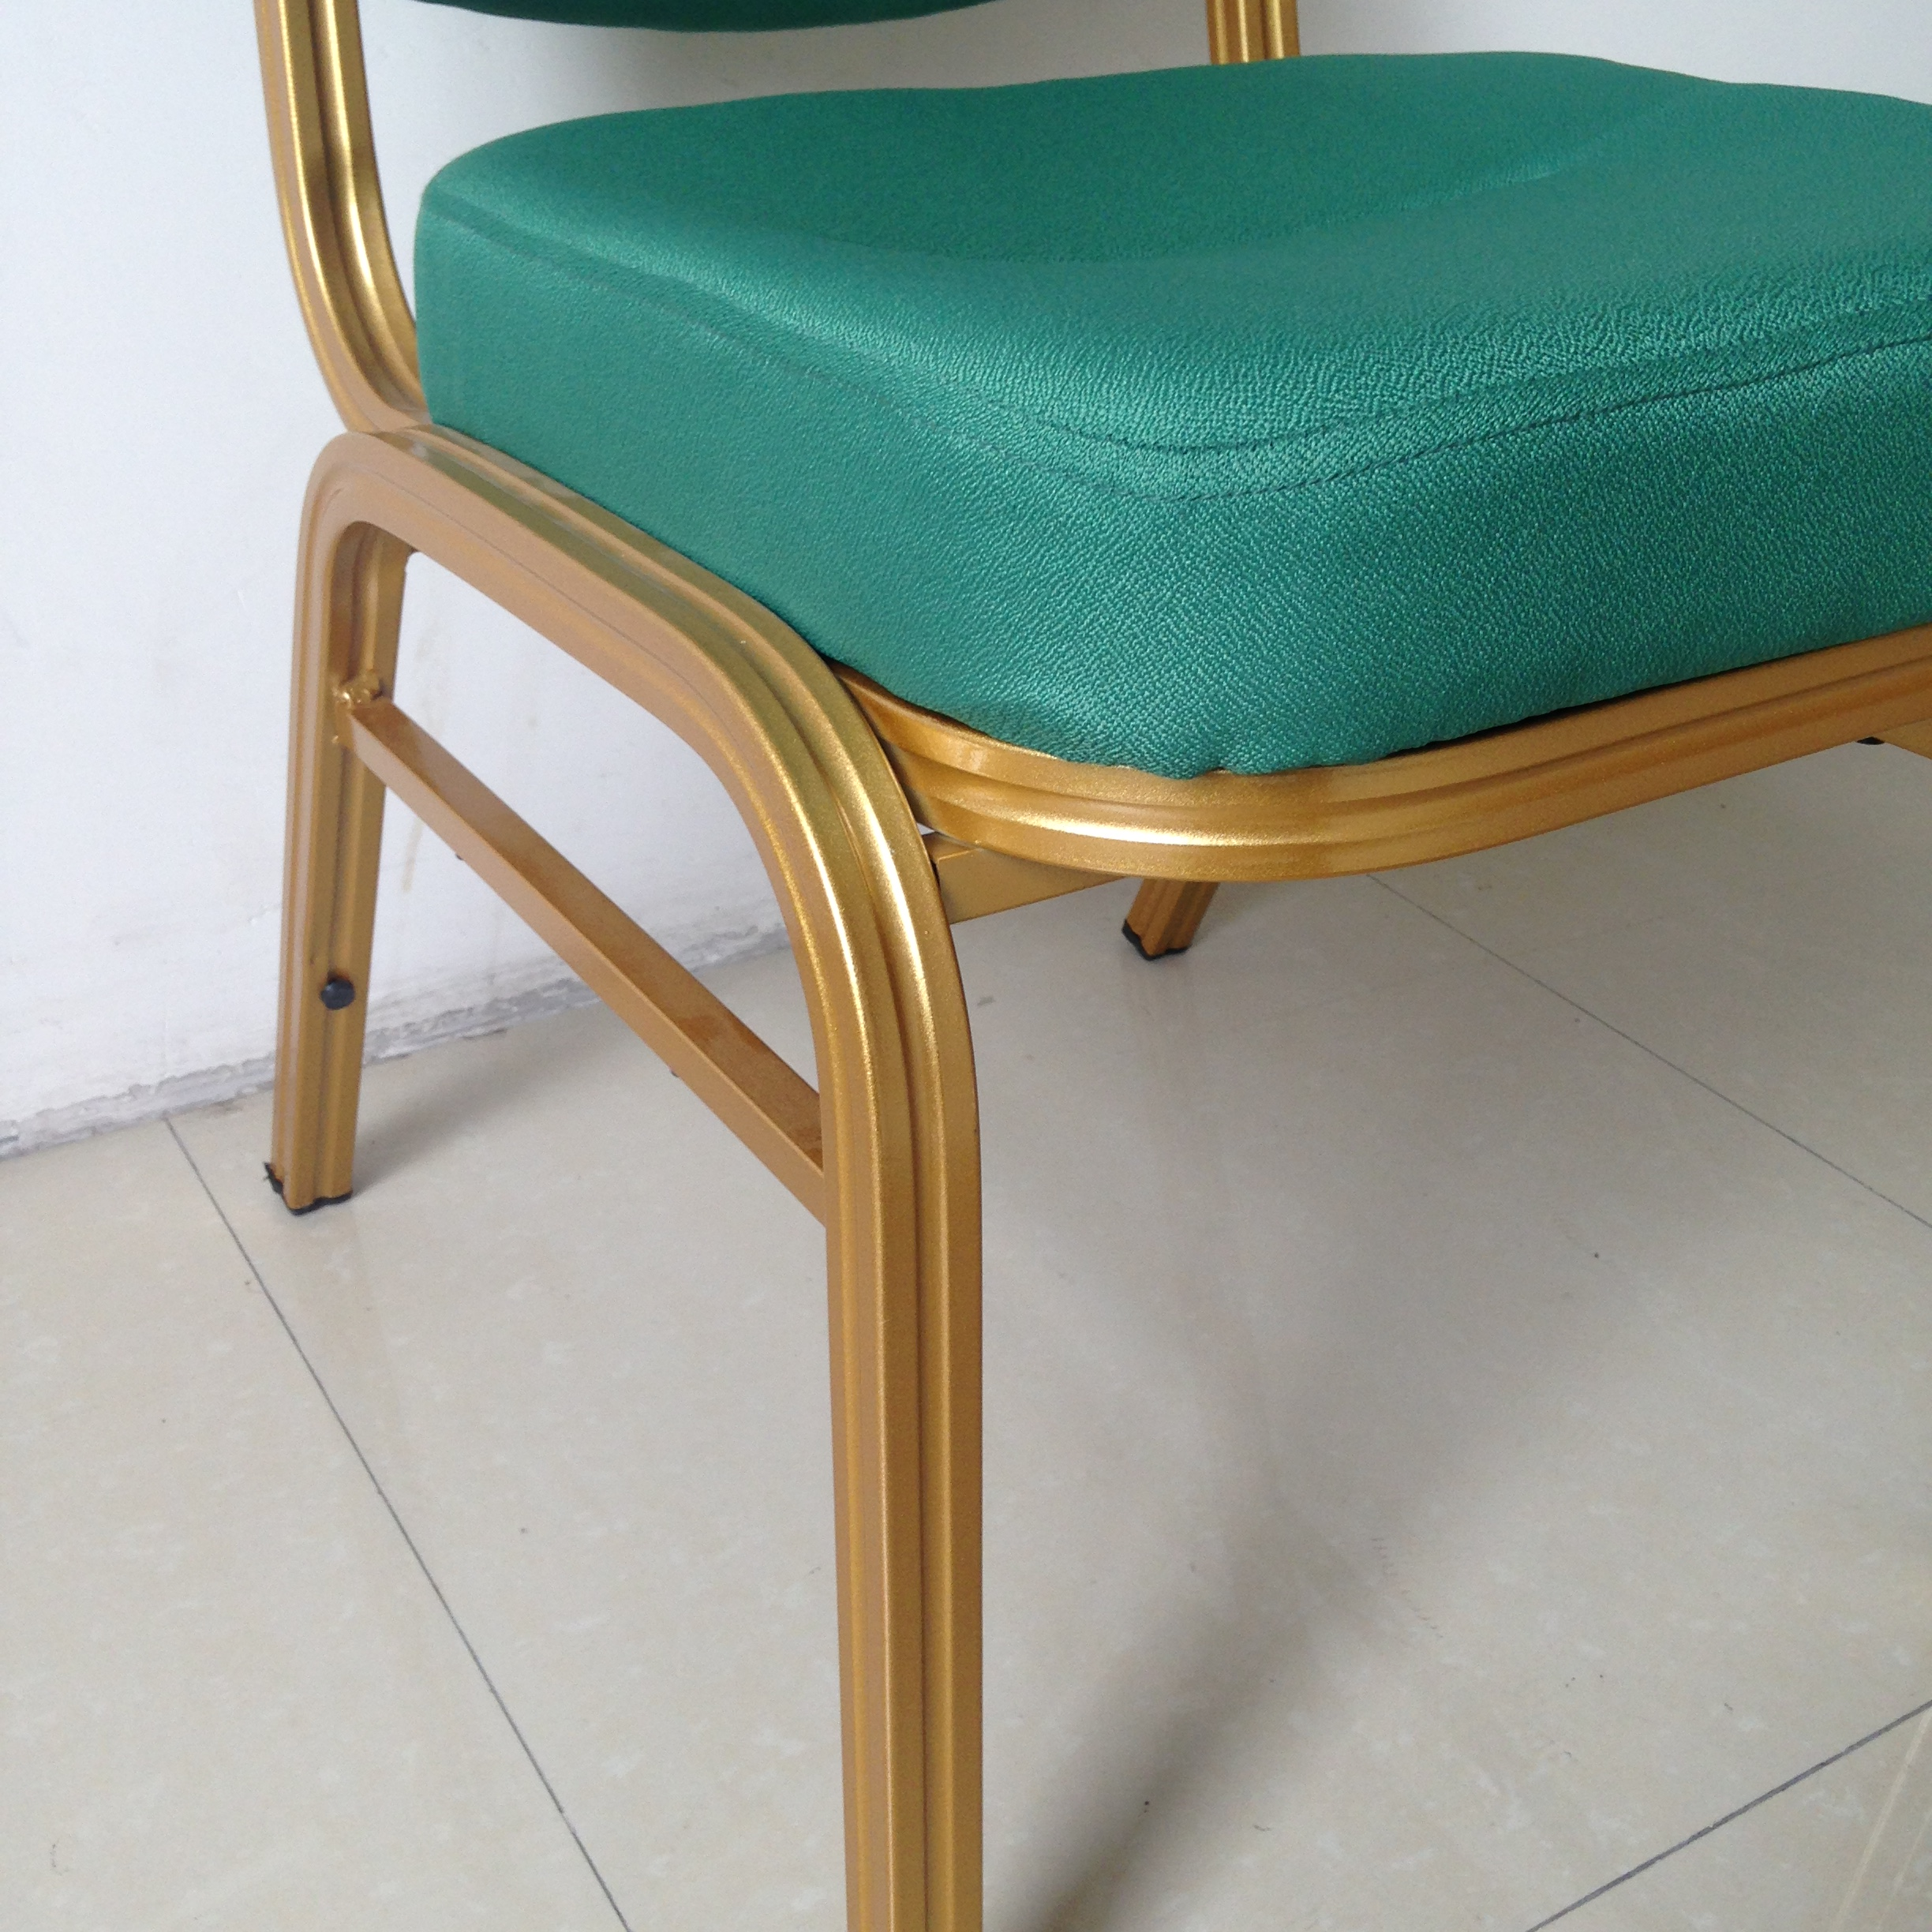 Best quality Regal Plastic Chairs -